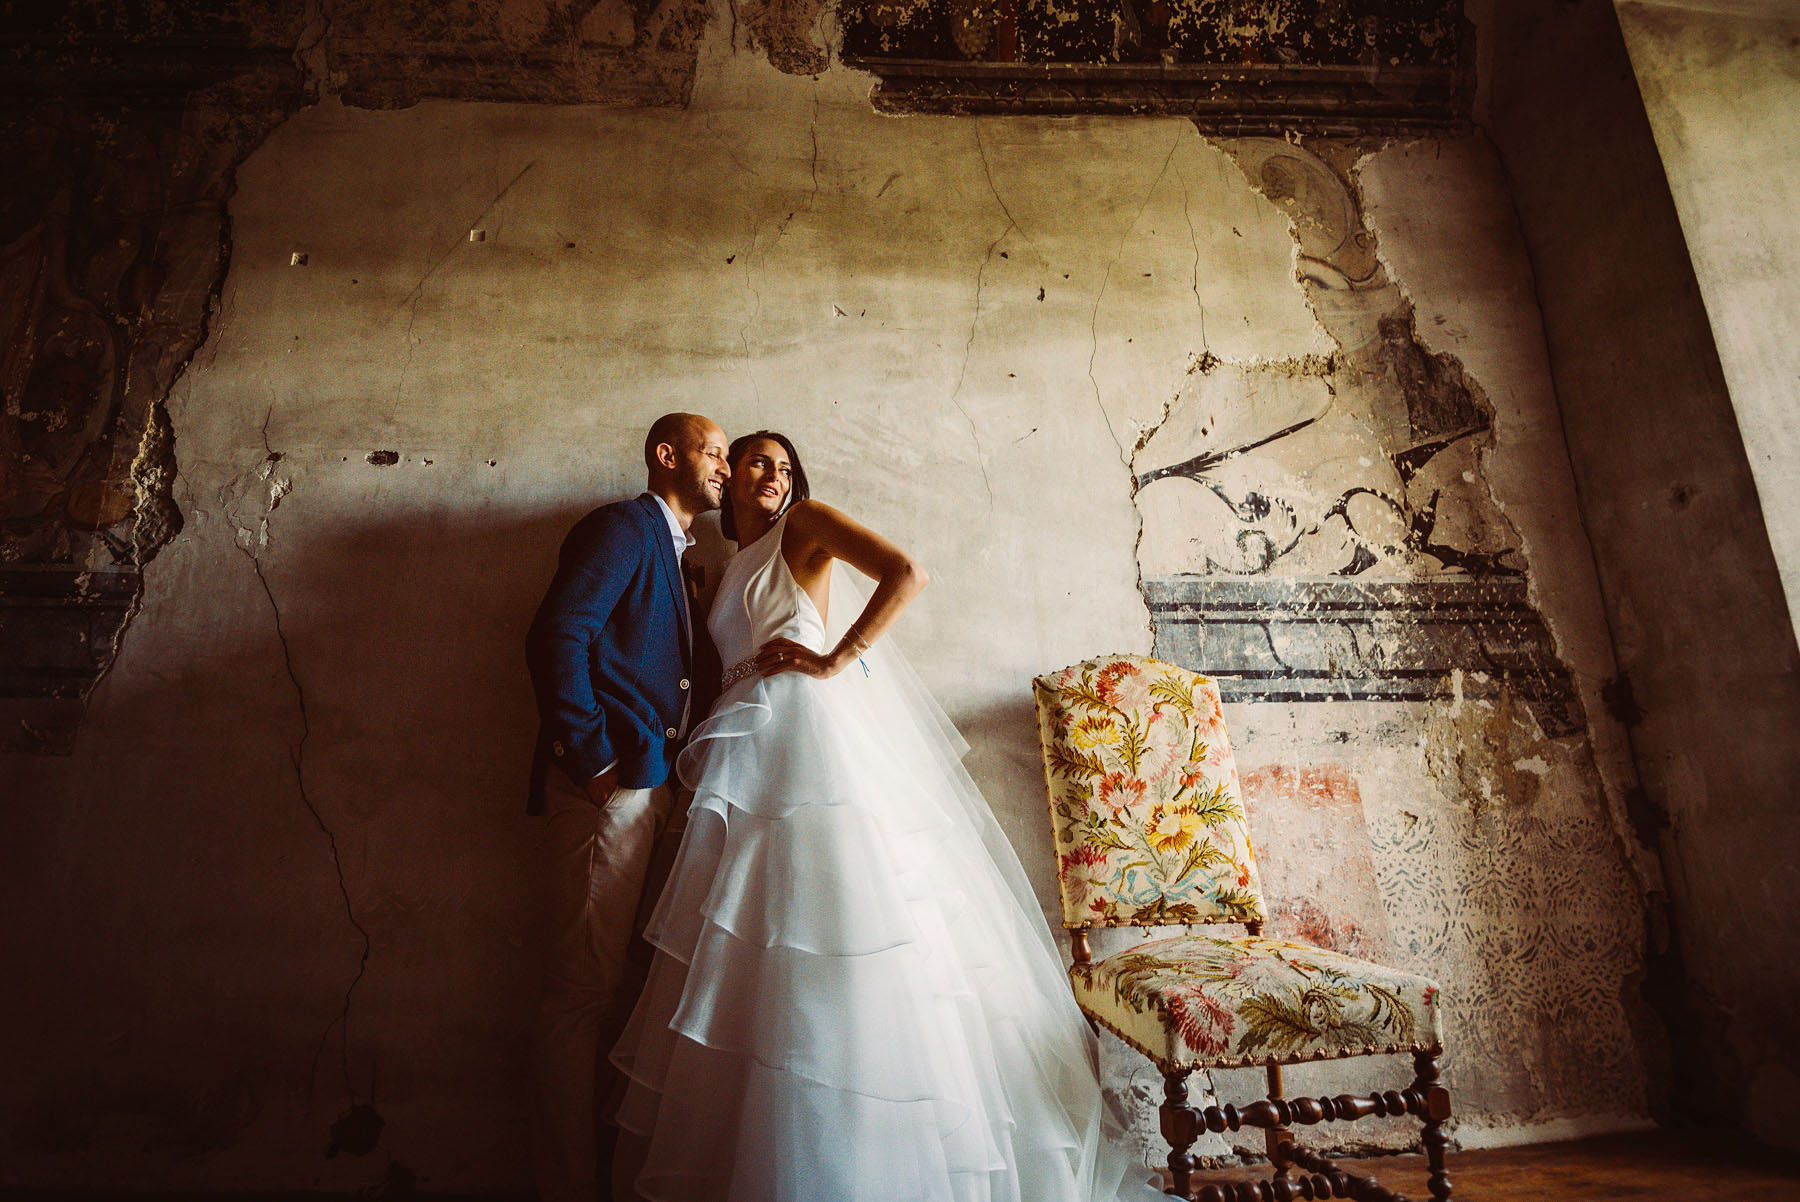 Wedding in L'Abbey de Camon in the South of France